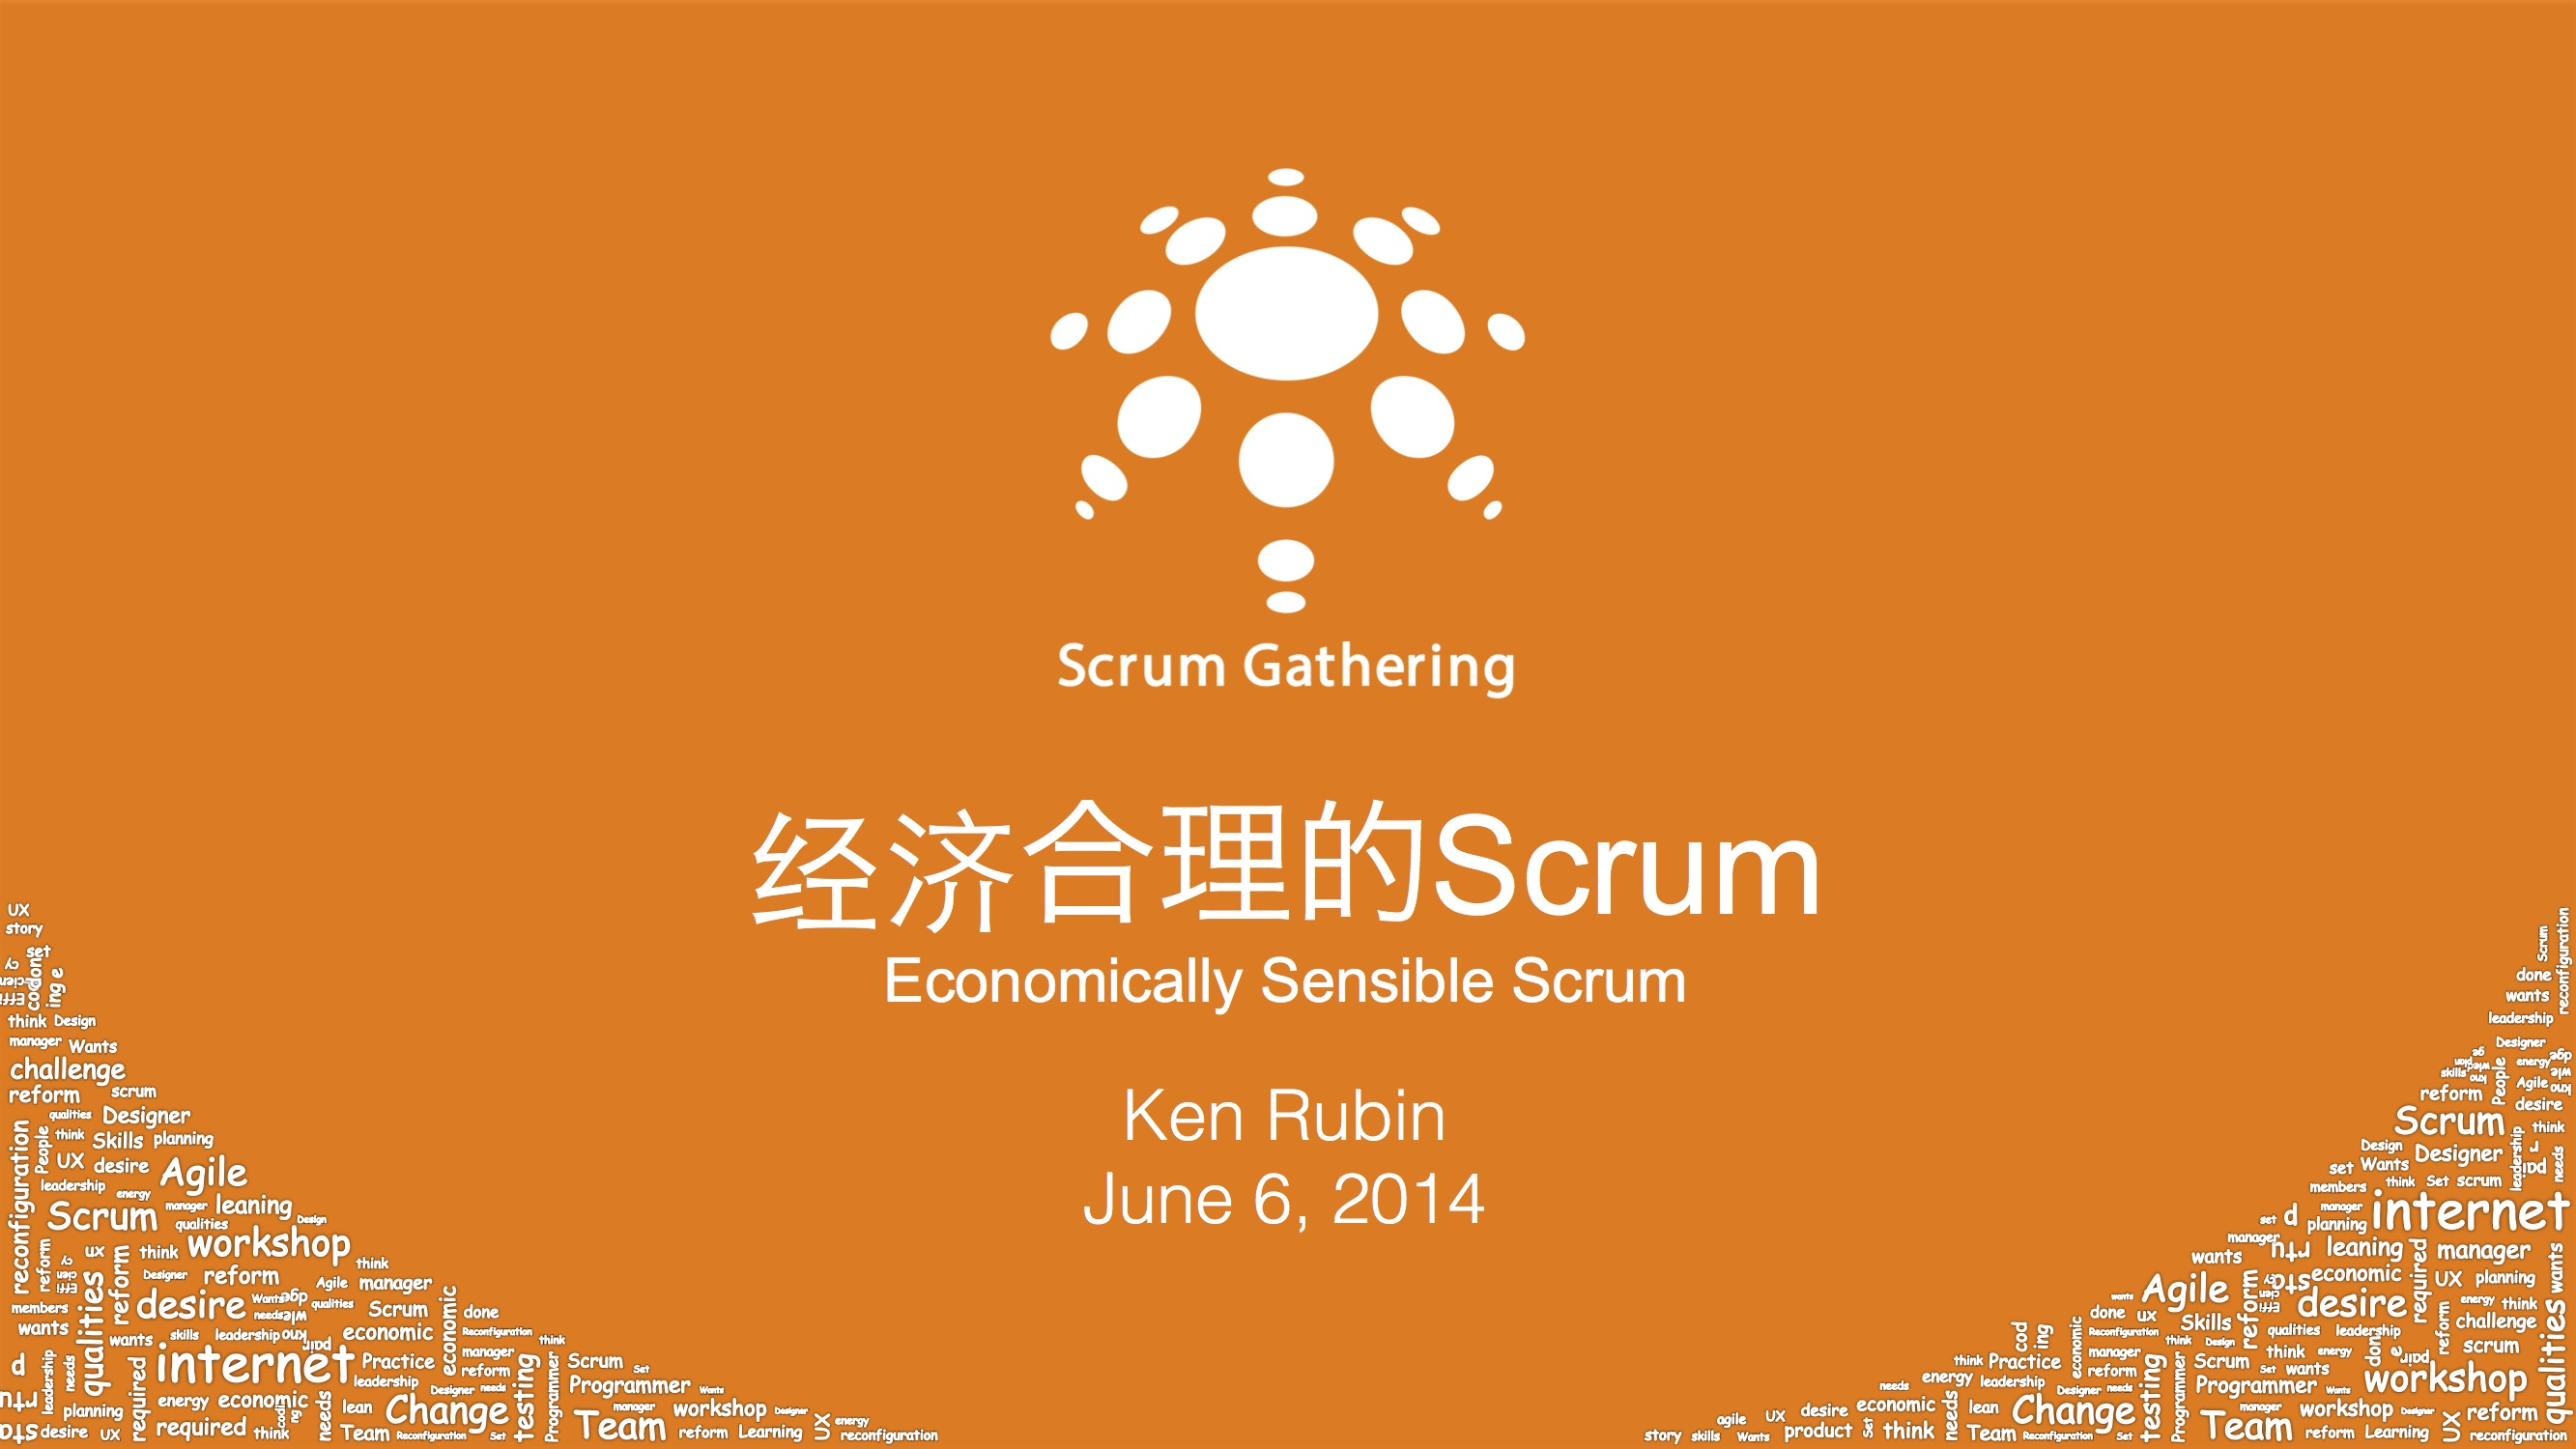 Scrum Gathering Shanghai 2014 Economically Sensible Scrum